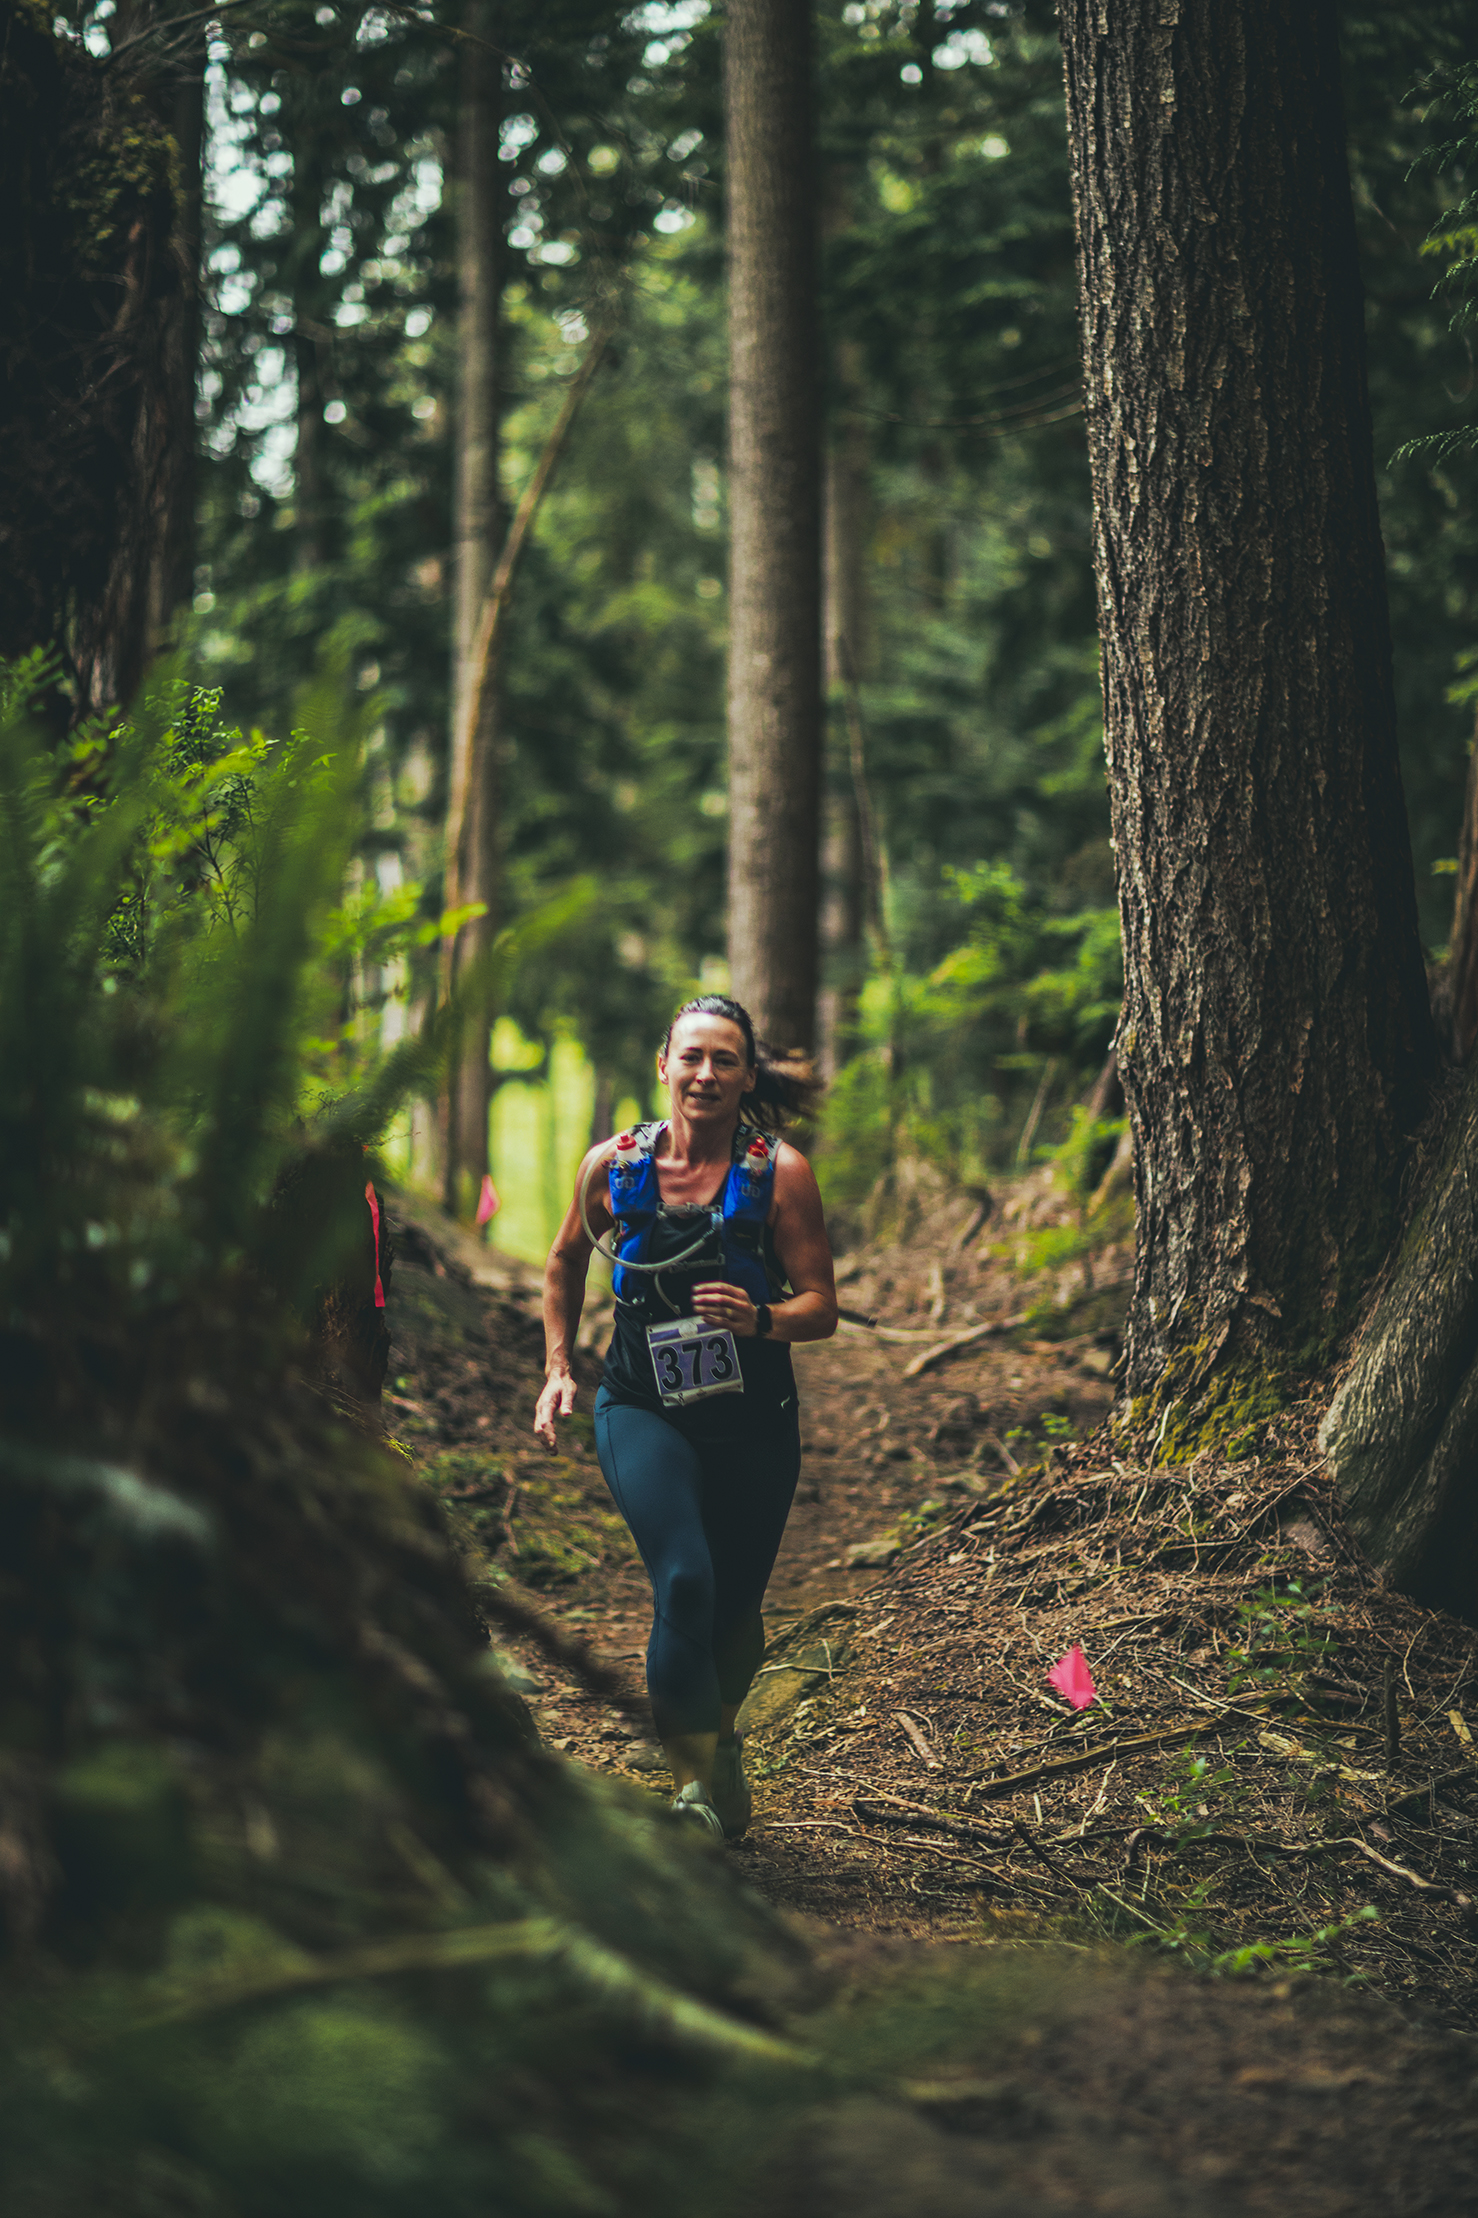 Fraser Valley Trail Races - Bear Mountain - IMG_1514 by Brice Ferre Studio - Vancouver Portrait Adventure and Athlete Photographer.jpg